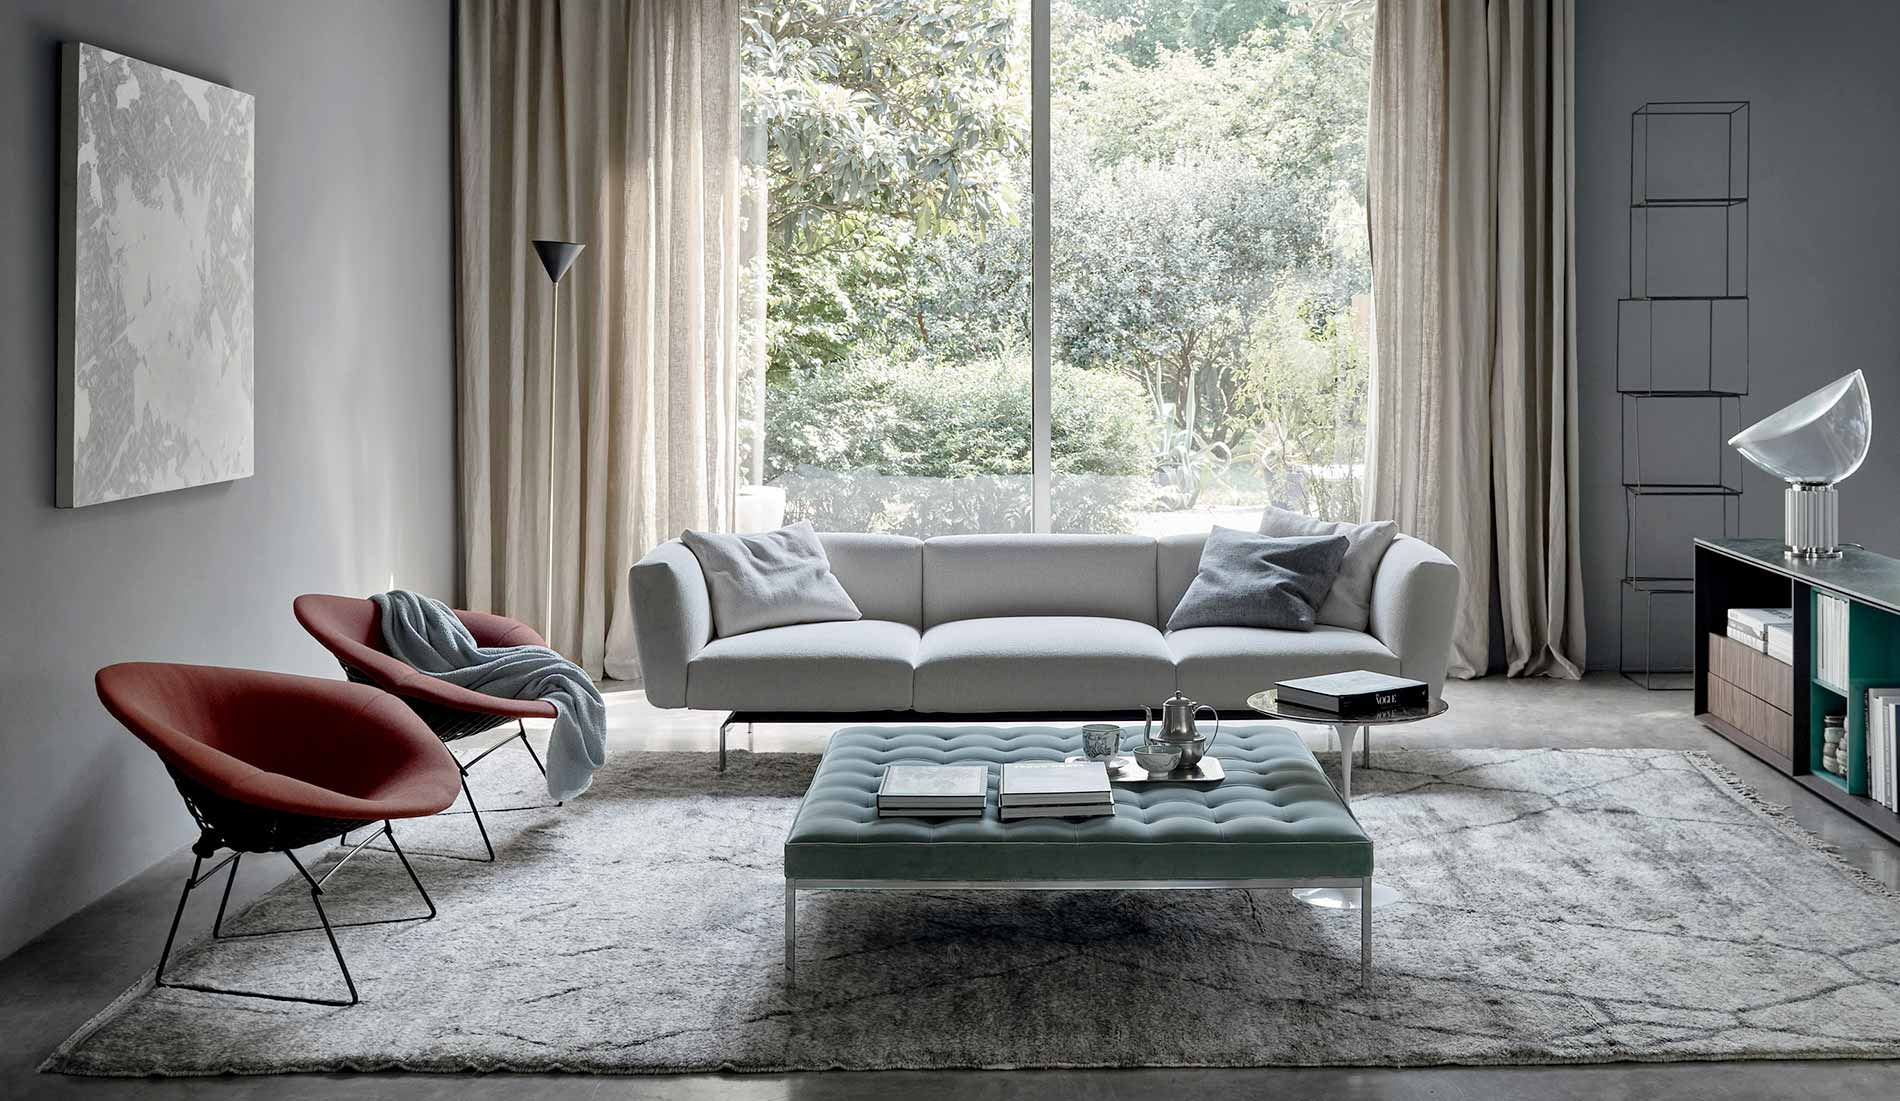 Knoll Living Room with Bertoia Diamond Chair Avio Sofa Florence Knoll Relaxed Bench